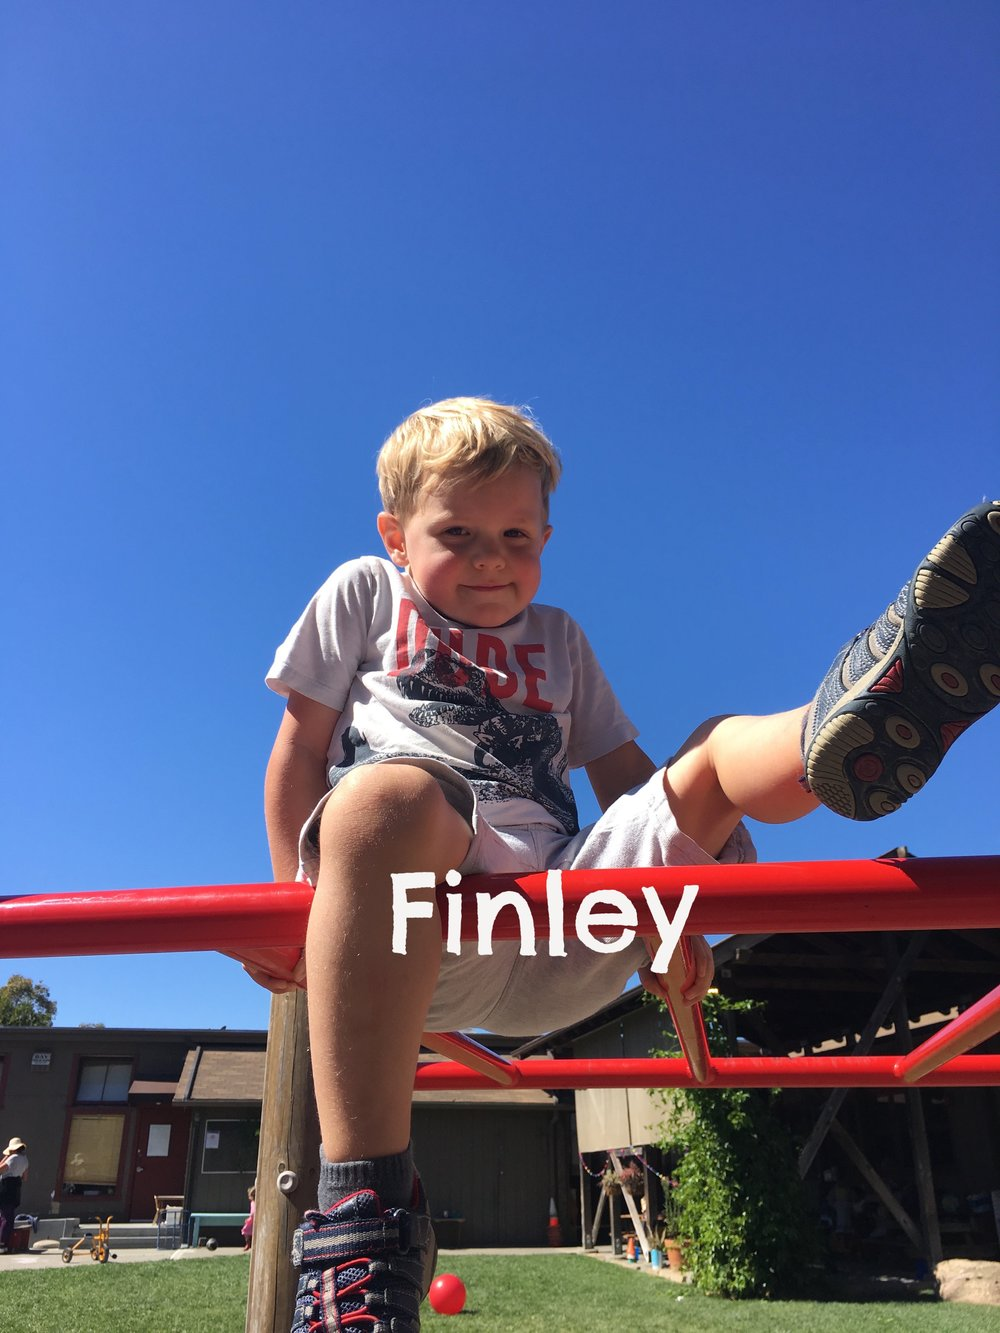 finley copy.jpeg